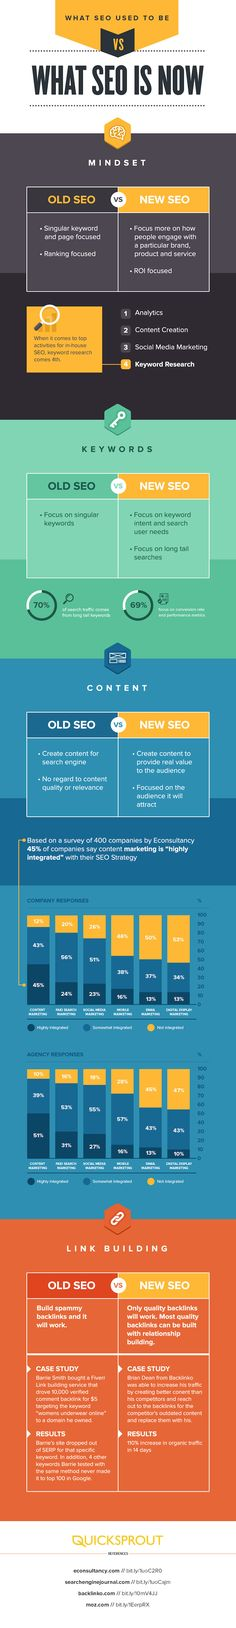 What SEO Used To Be Versus What SEO Is Now